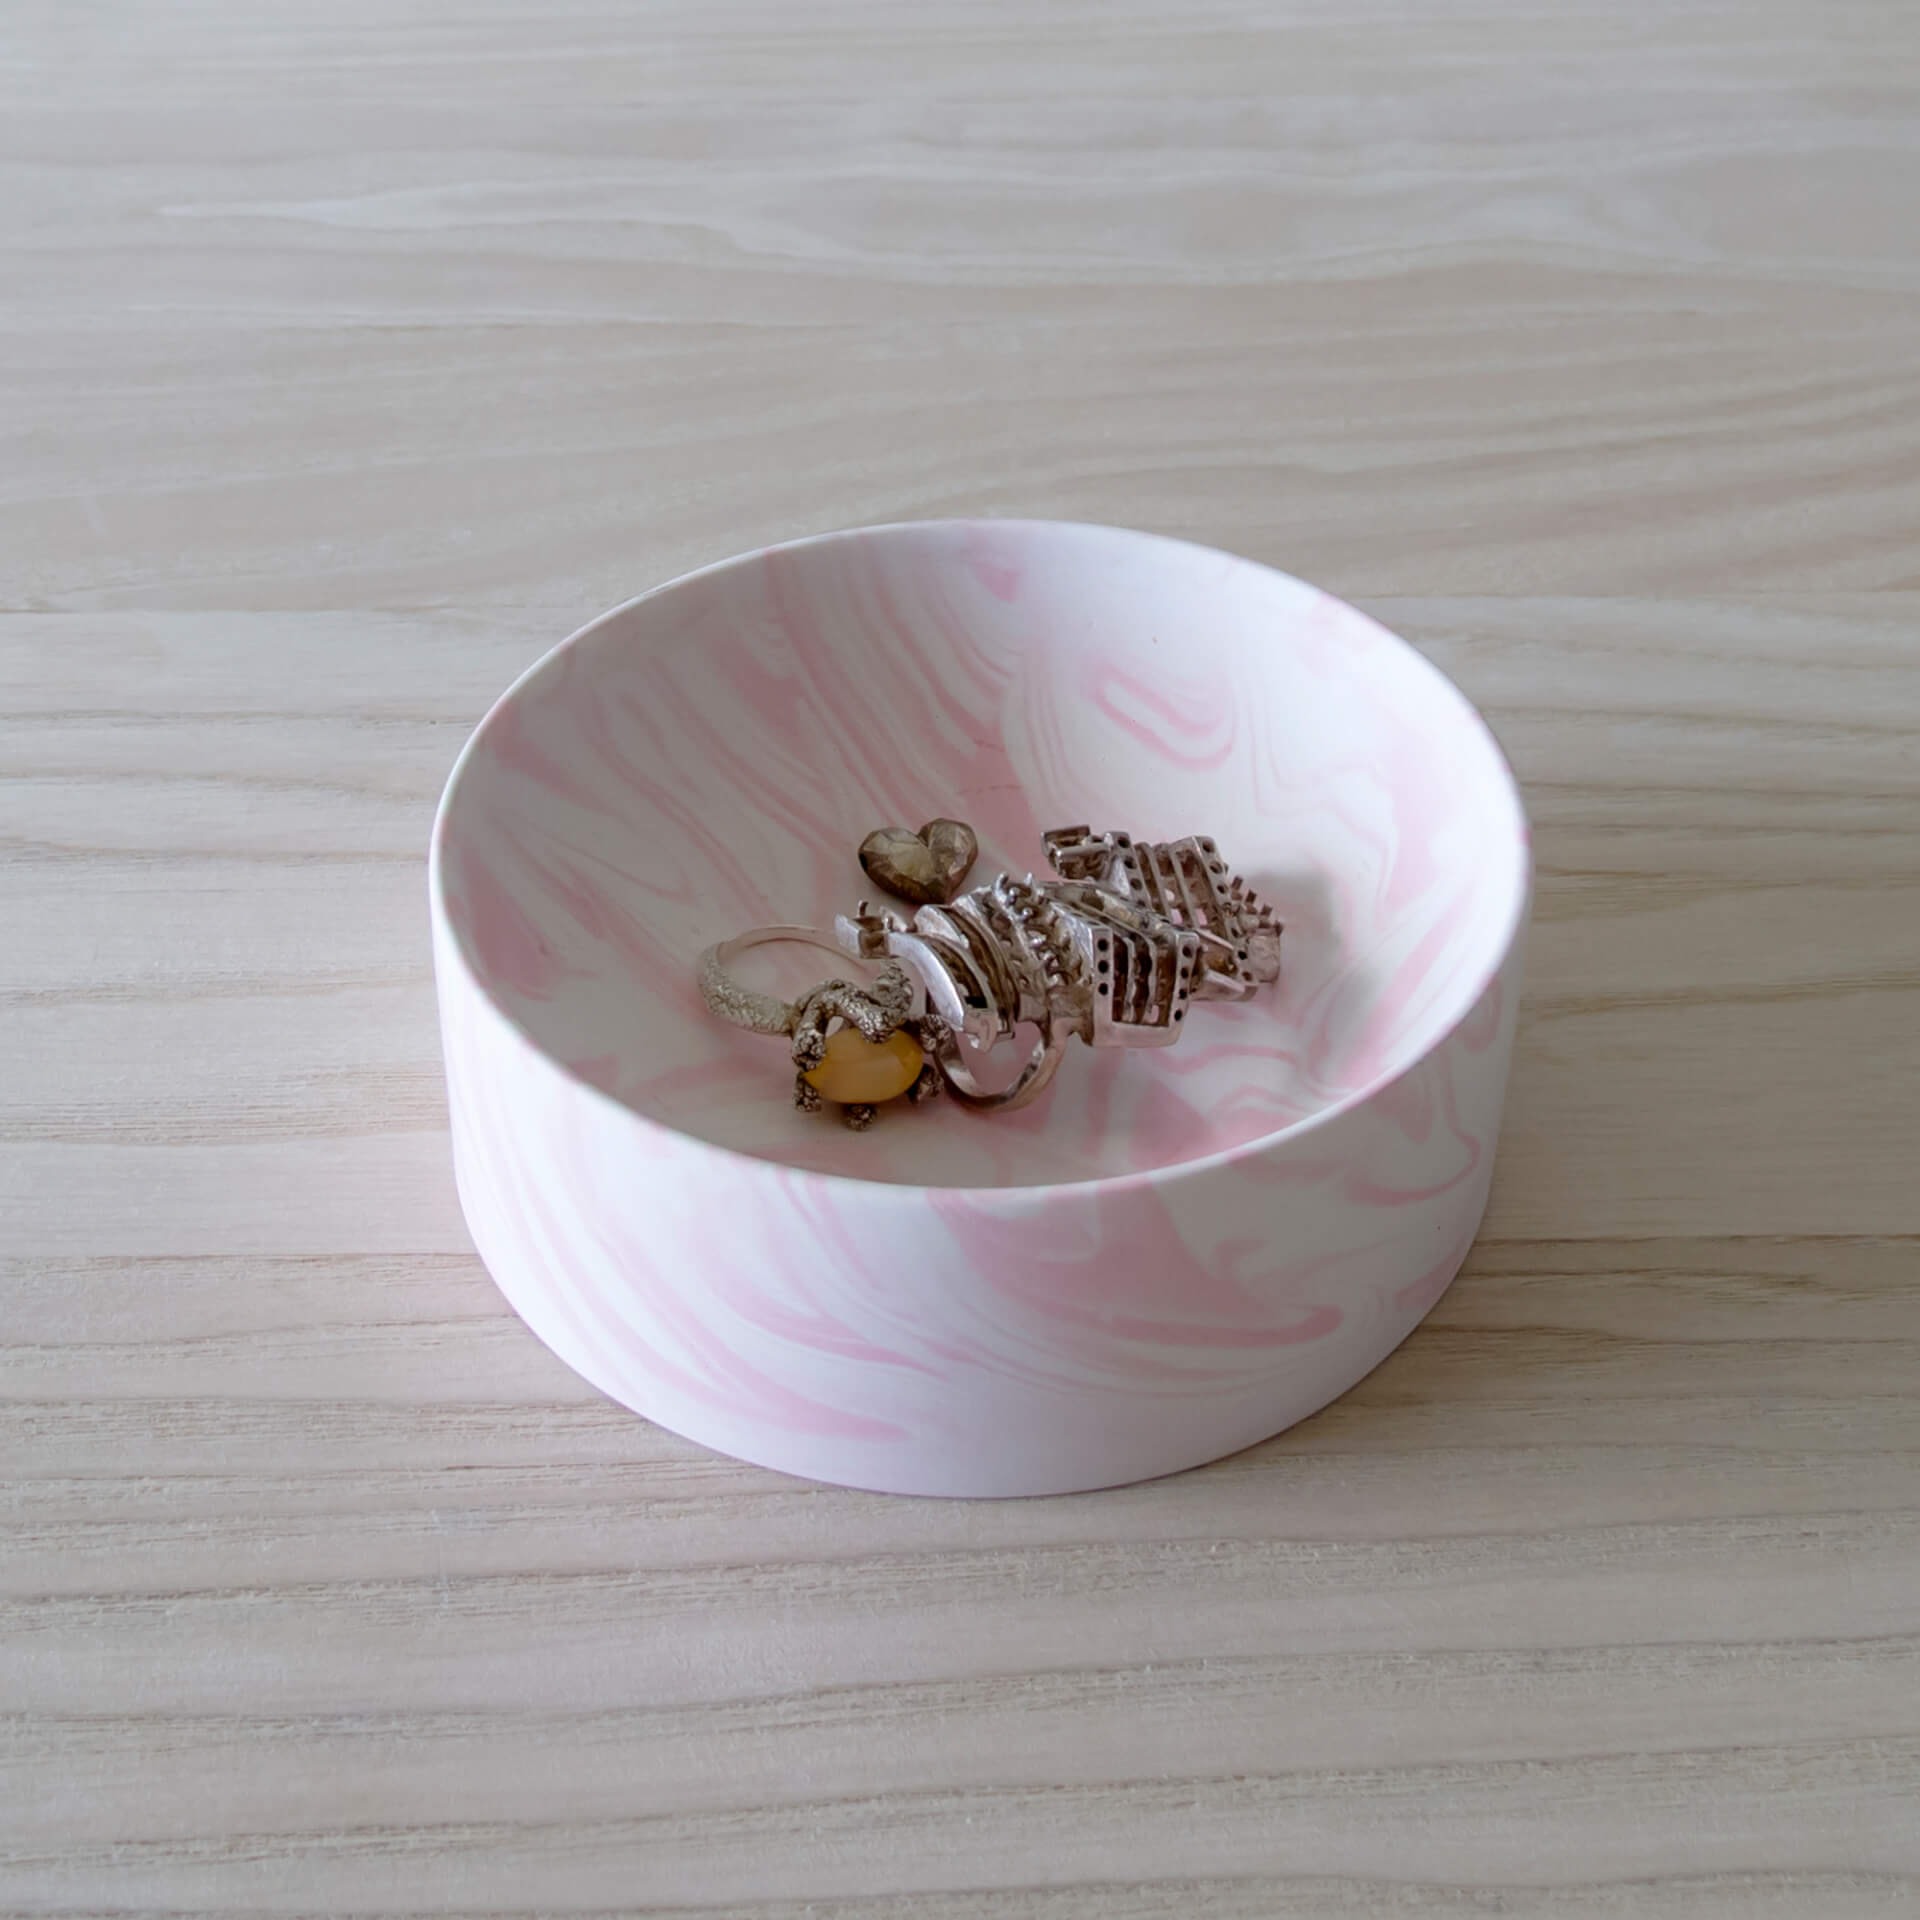 Poured Bowl – Small – White with Pink – Top View – Troels_Flensted – Square – 300dpi